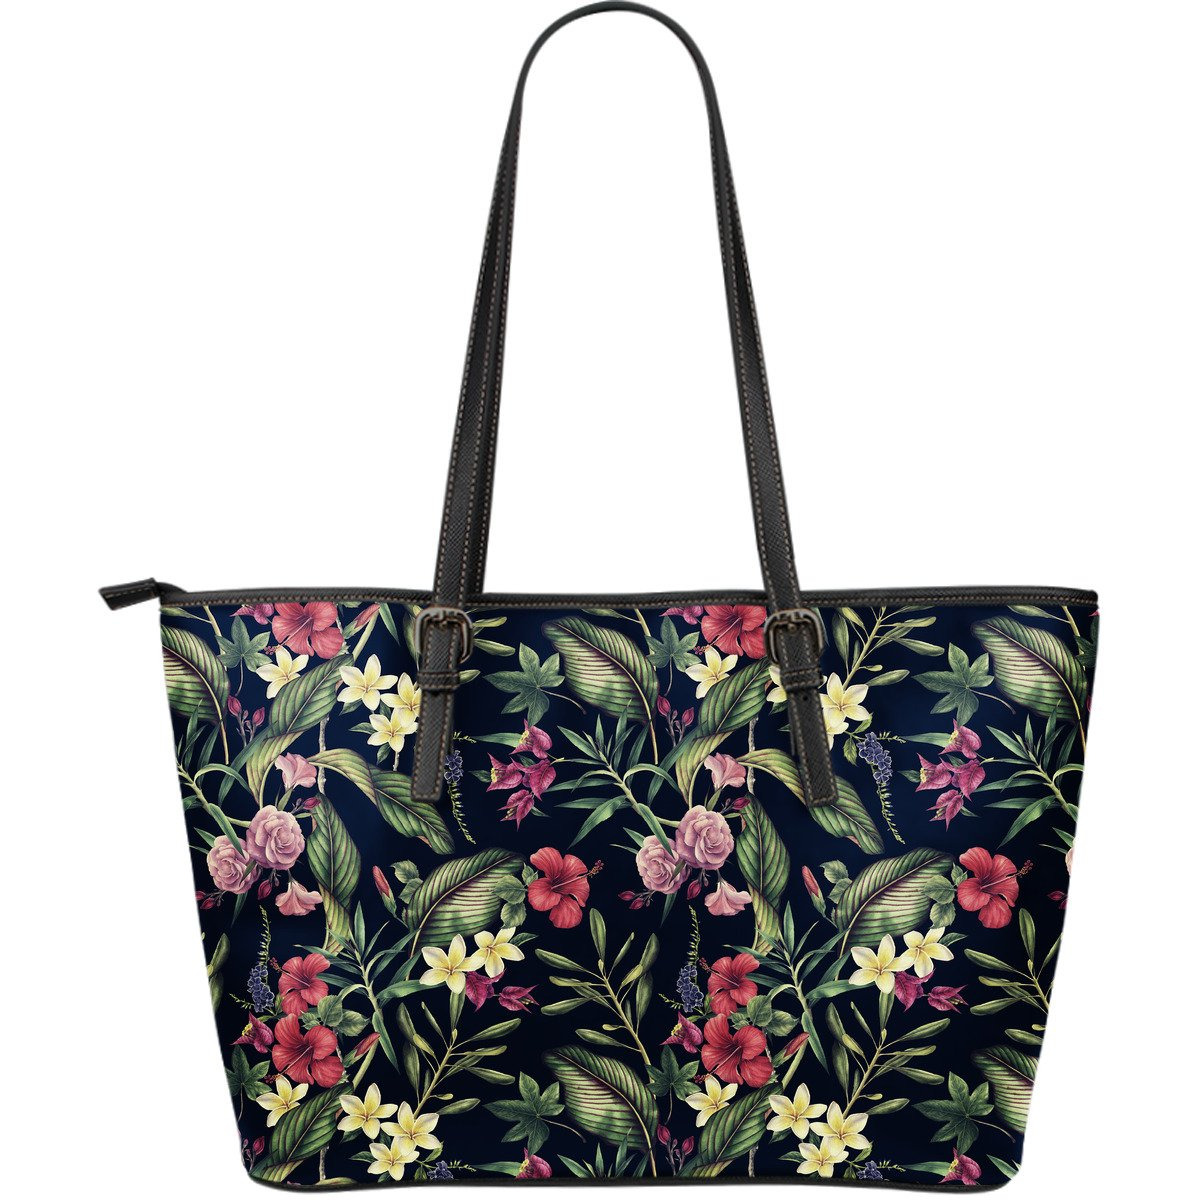 Tropical Flower Pattern Large Leather Tote Bag